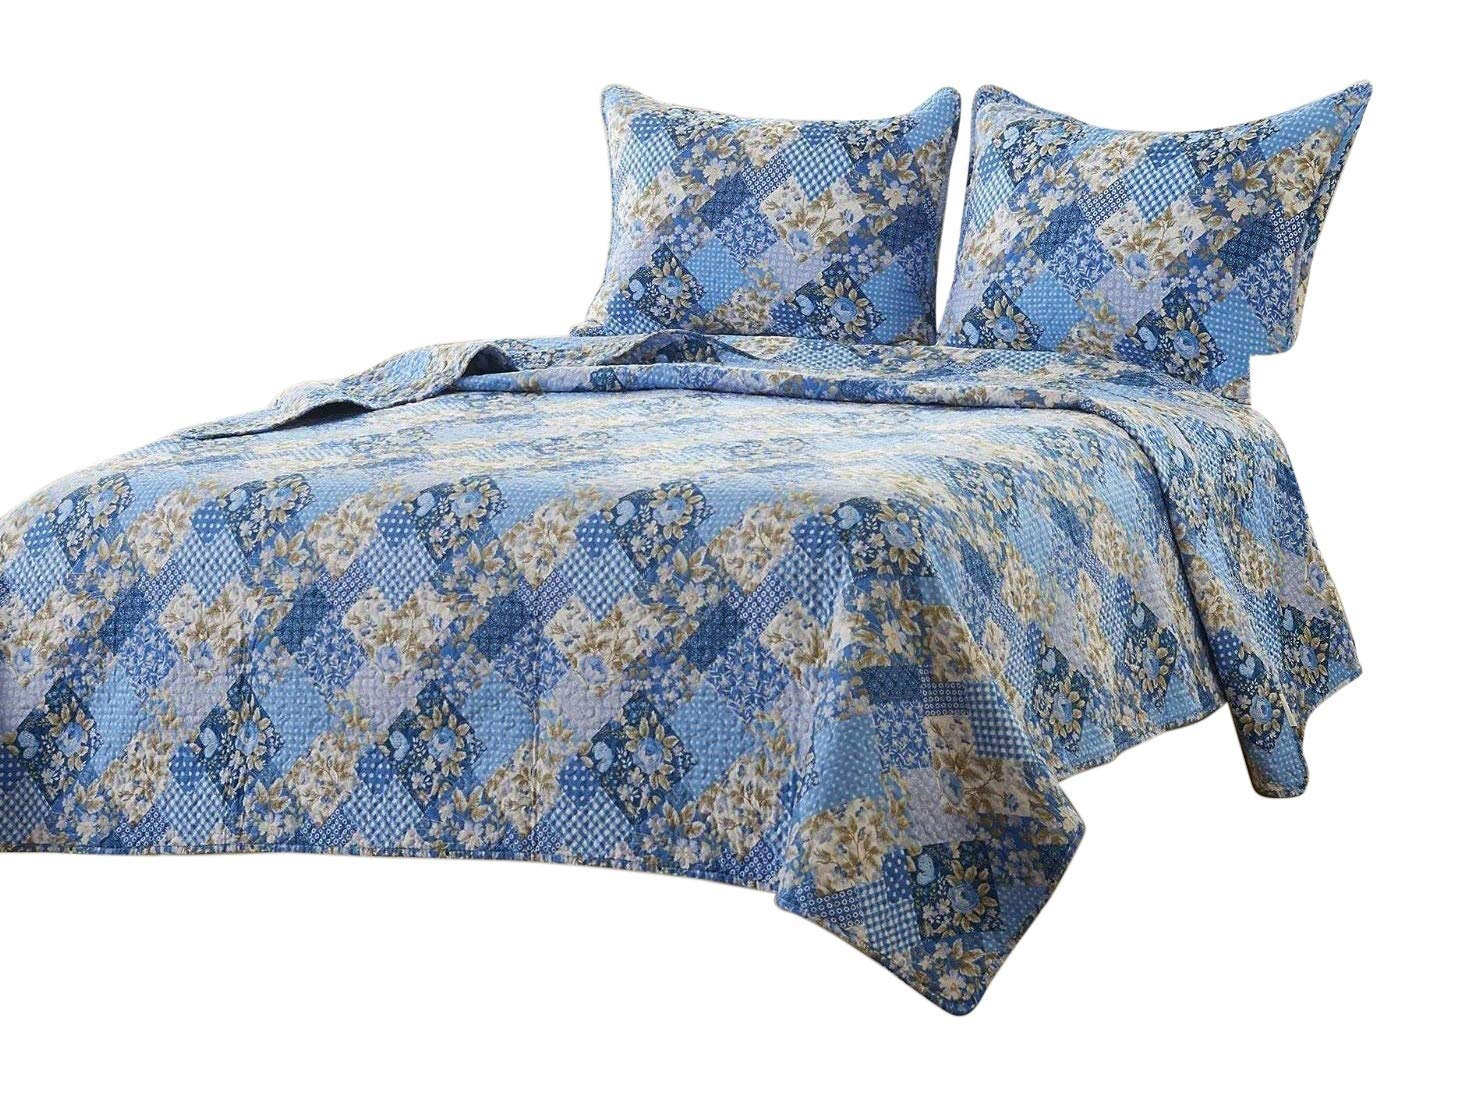 Web Linens Inc 2pcFloral Blue PatchworkQuilt Set - Style # 1048 - Twin/Twin XL - Cherry Hill Collection